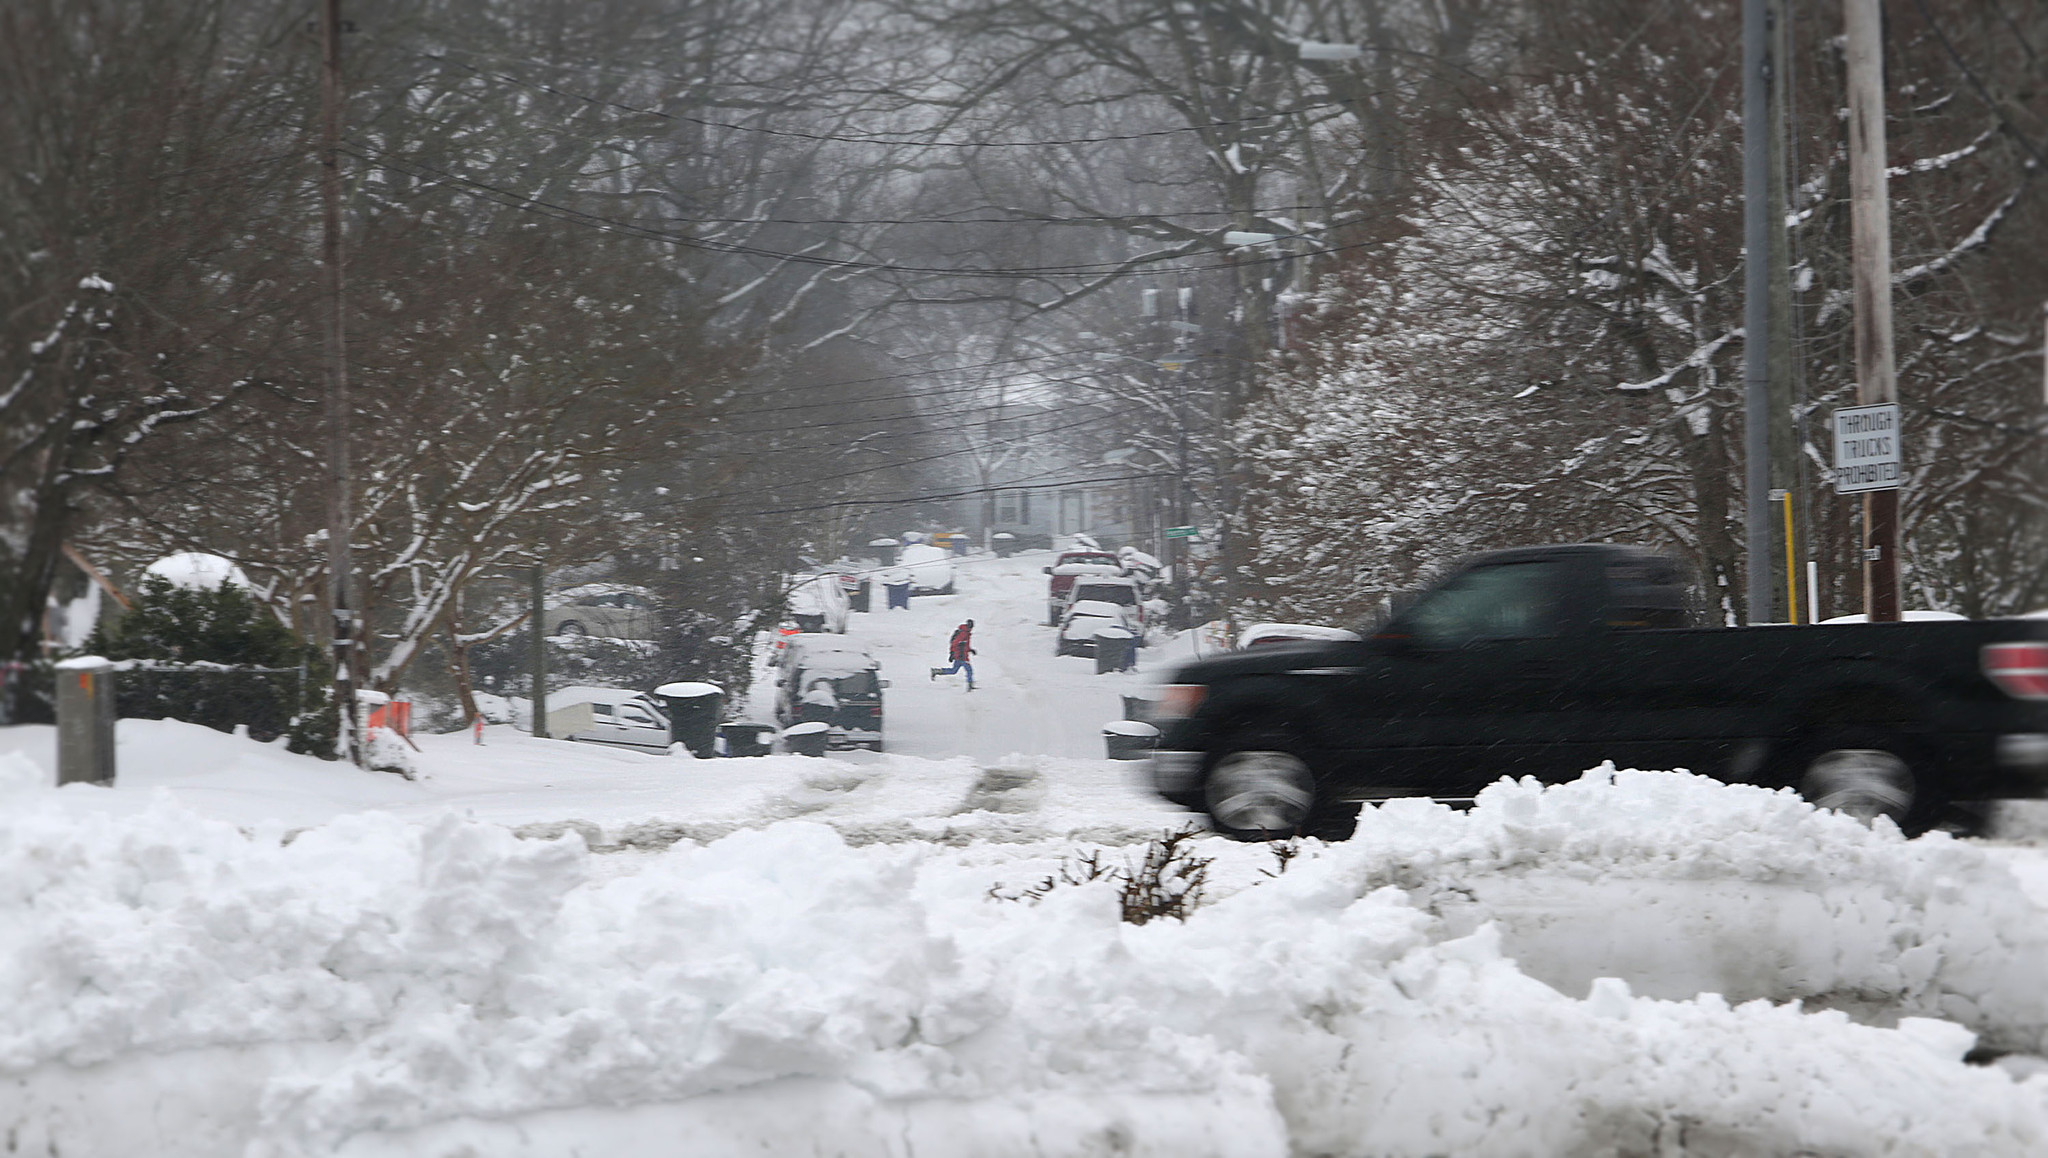 Snow will melt after warmer weather but drivers should watch for slick spots daily press